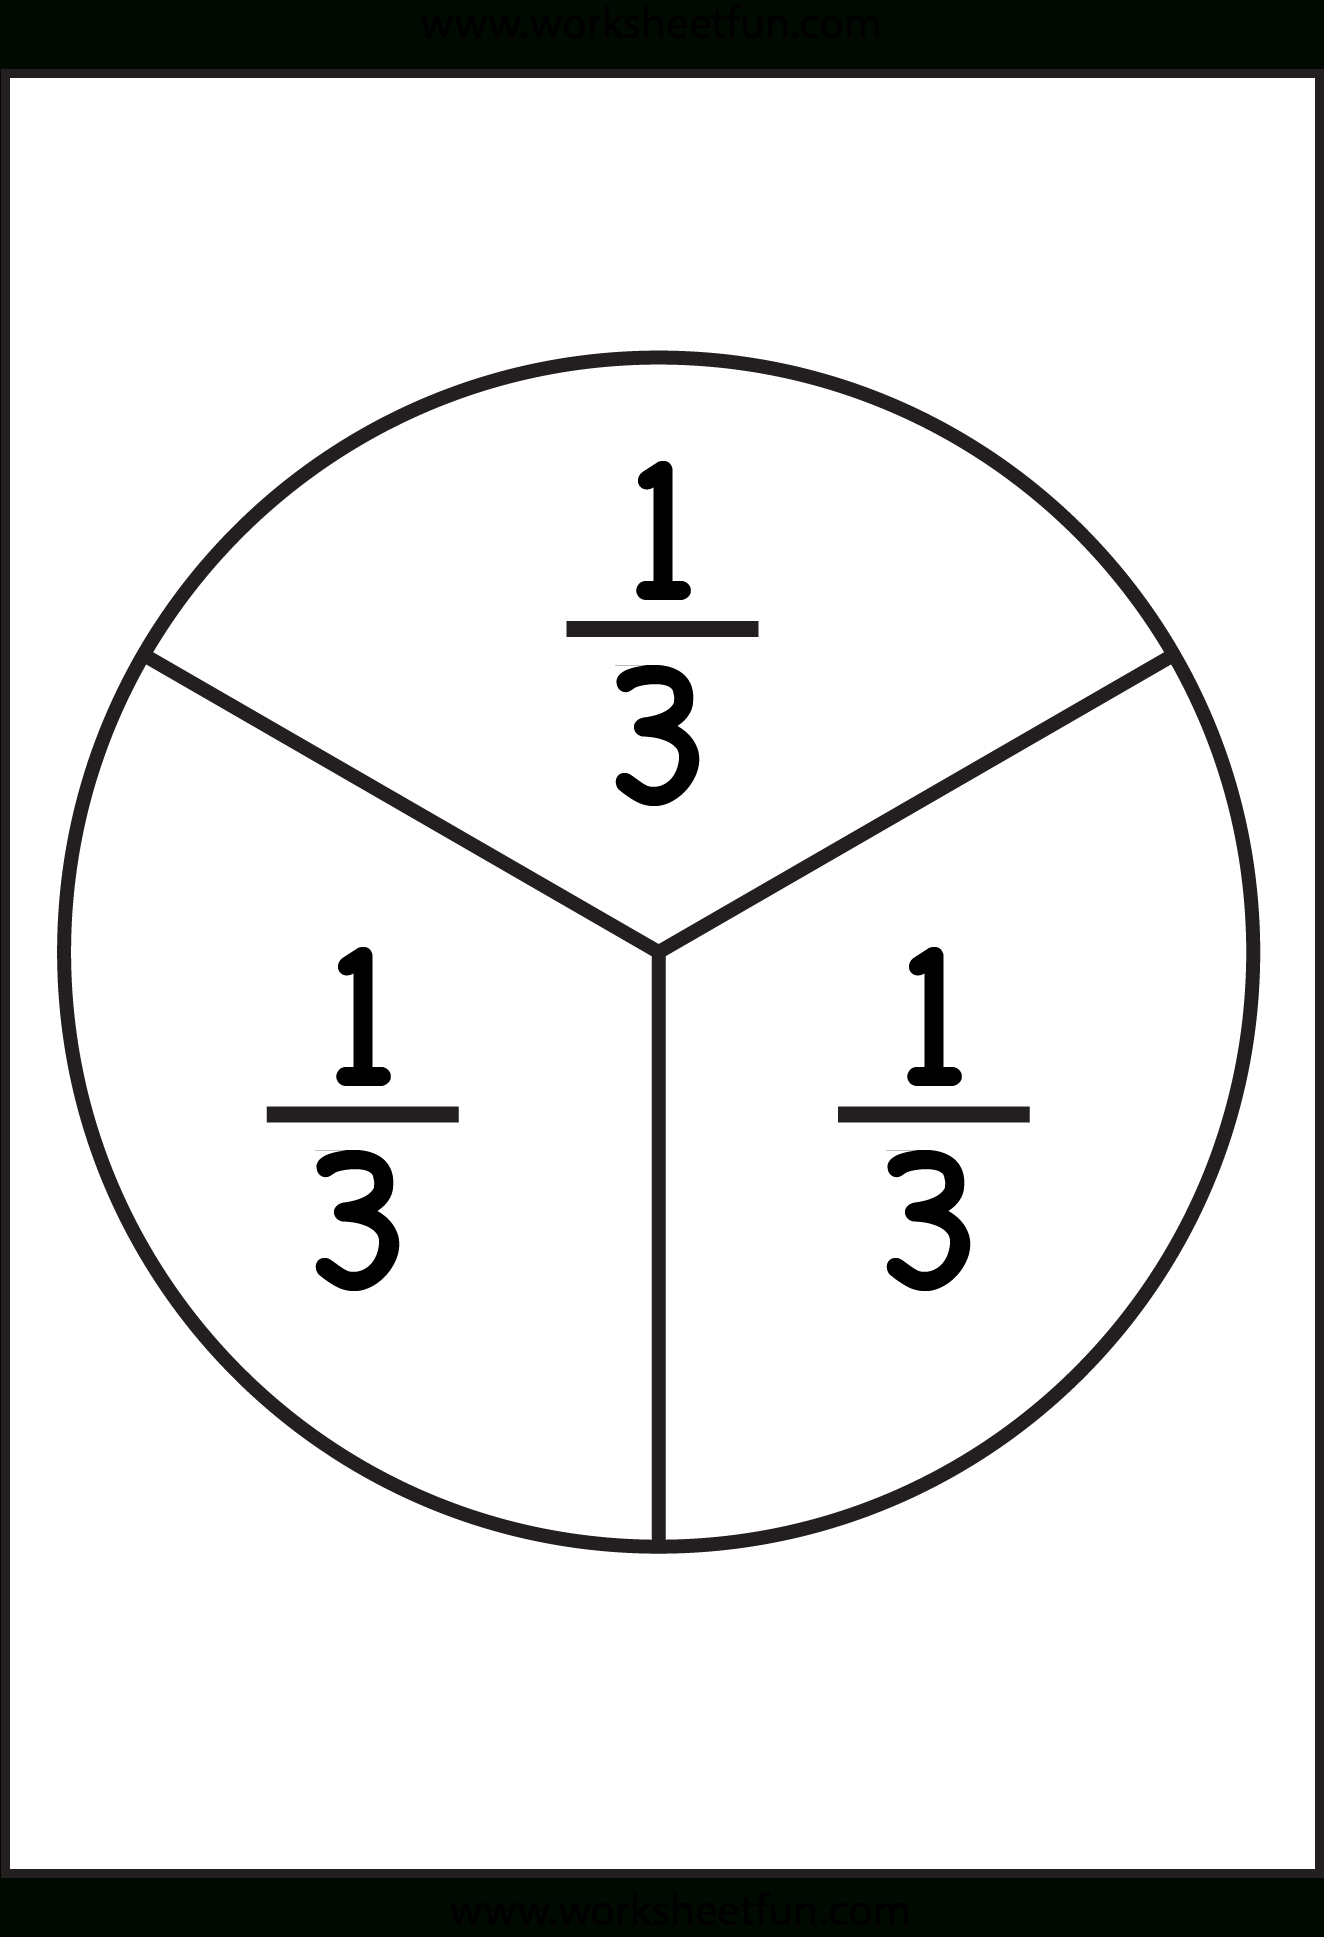 Fraction Circles - 11 Worksheets - 1/2,1/3,1/4,1/5,1/6,1/7,1/8,1/9,1 - Free Printable Blank Fraction Circles